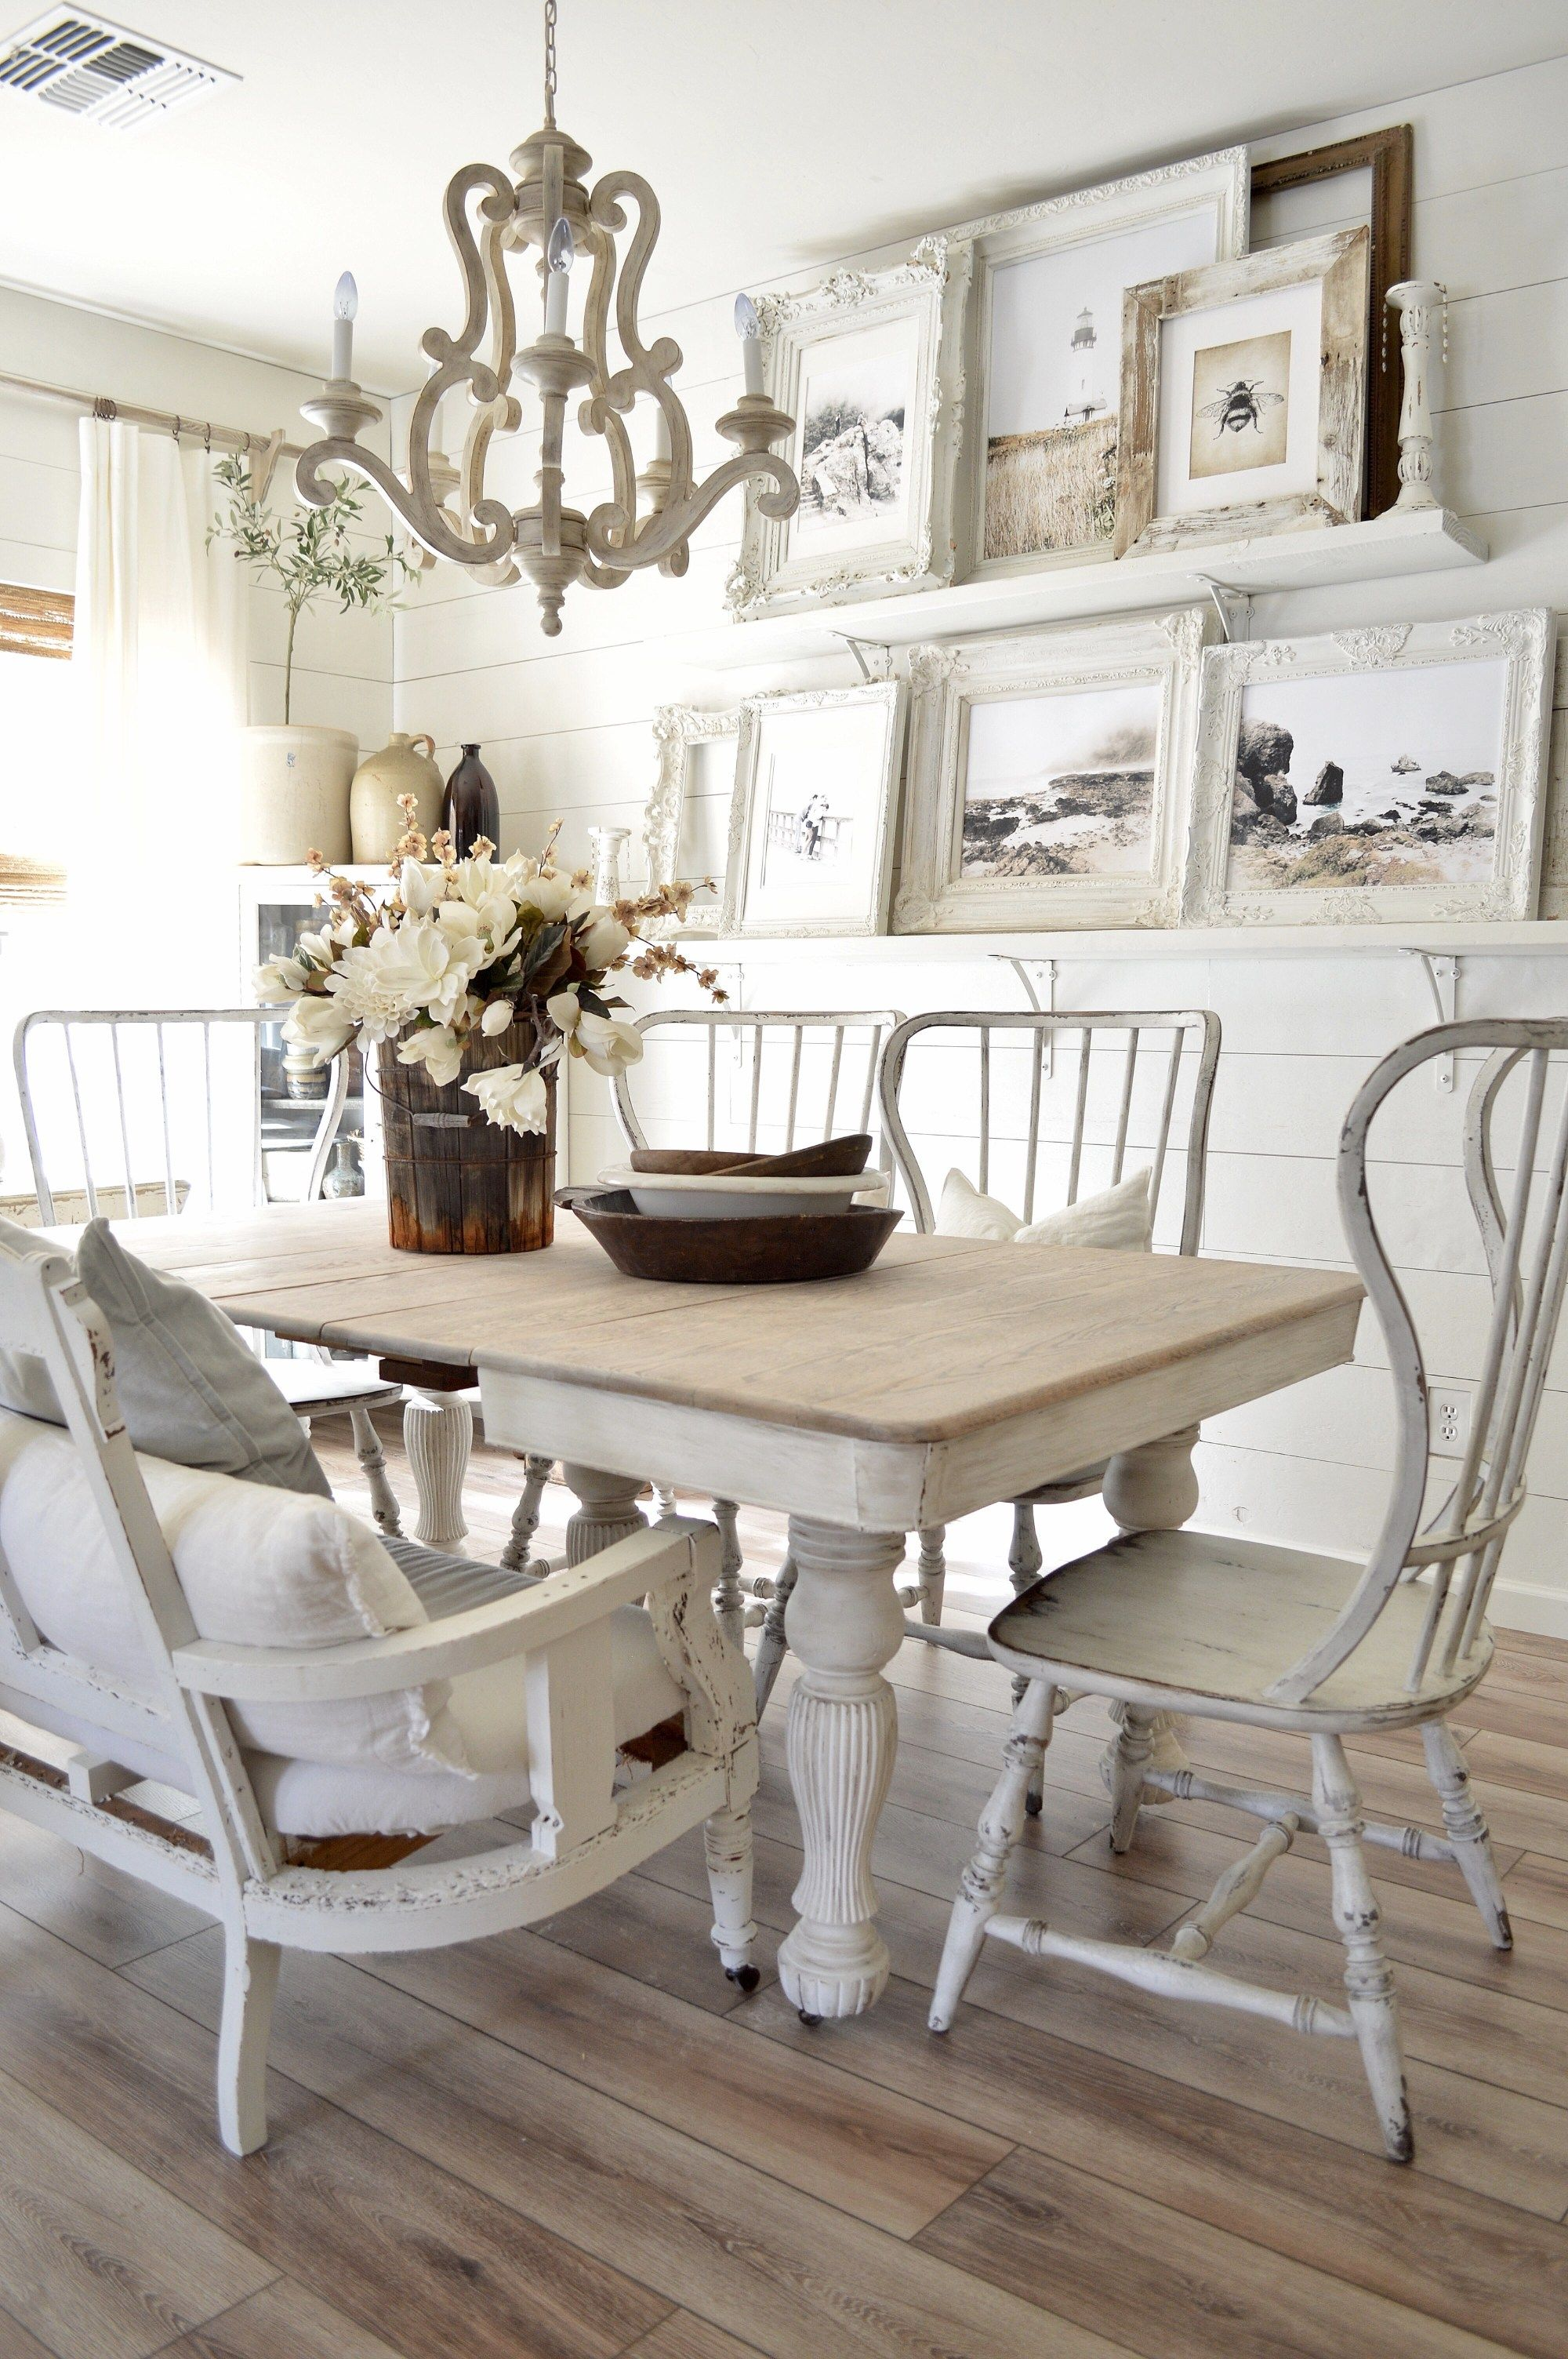 Diy Curtain Rods Shabby Chic Dining Room Farmhouse Dining Room